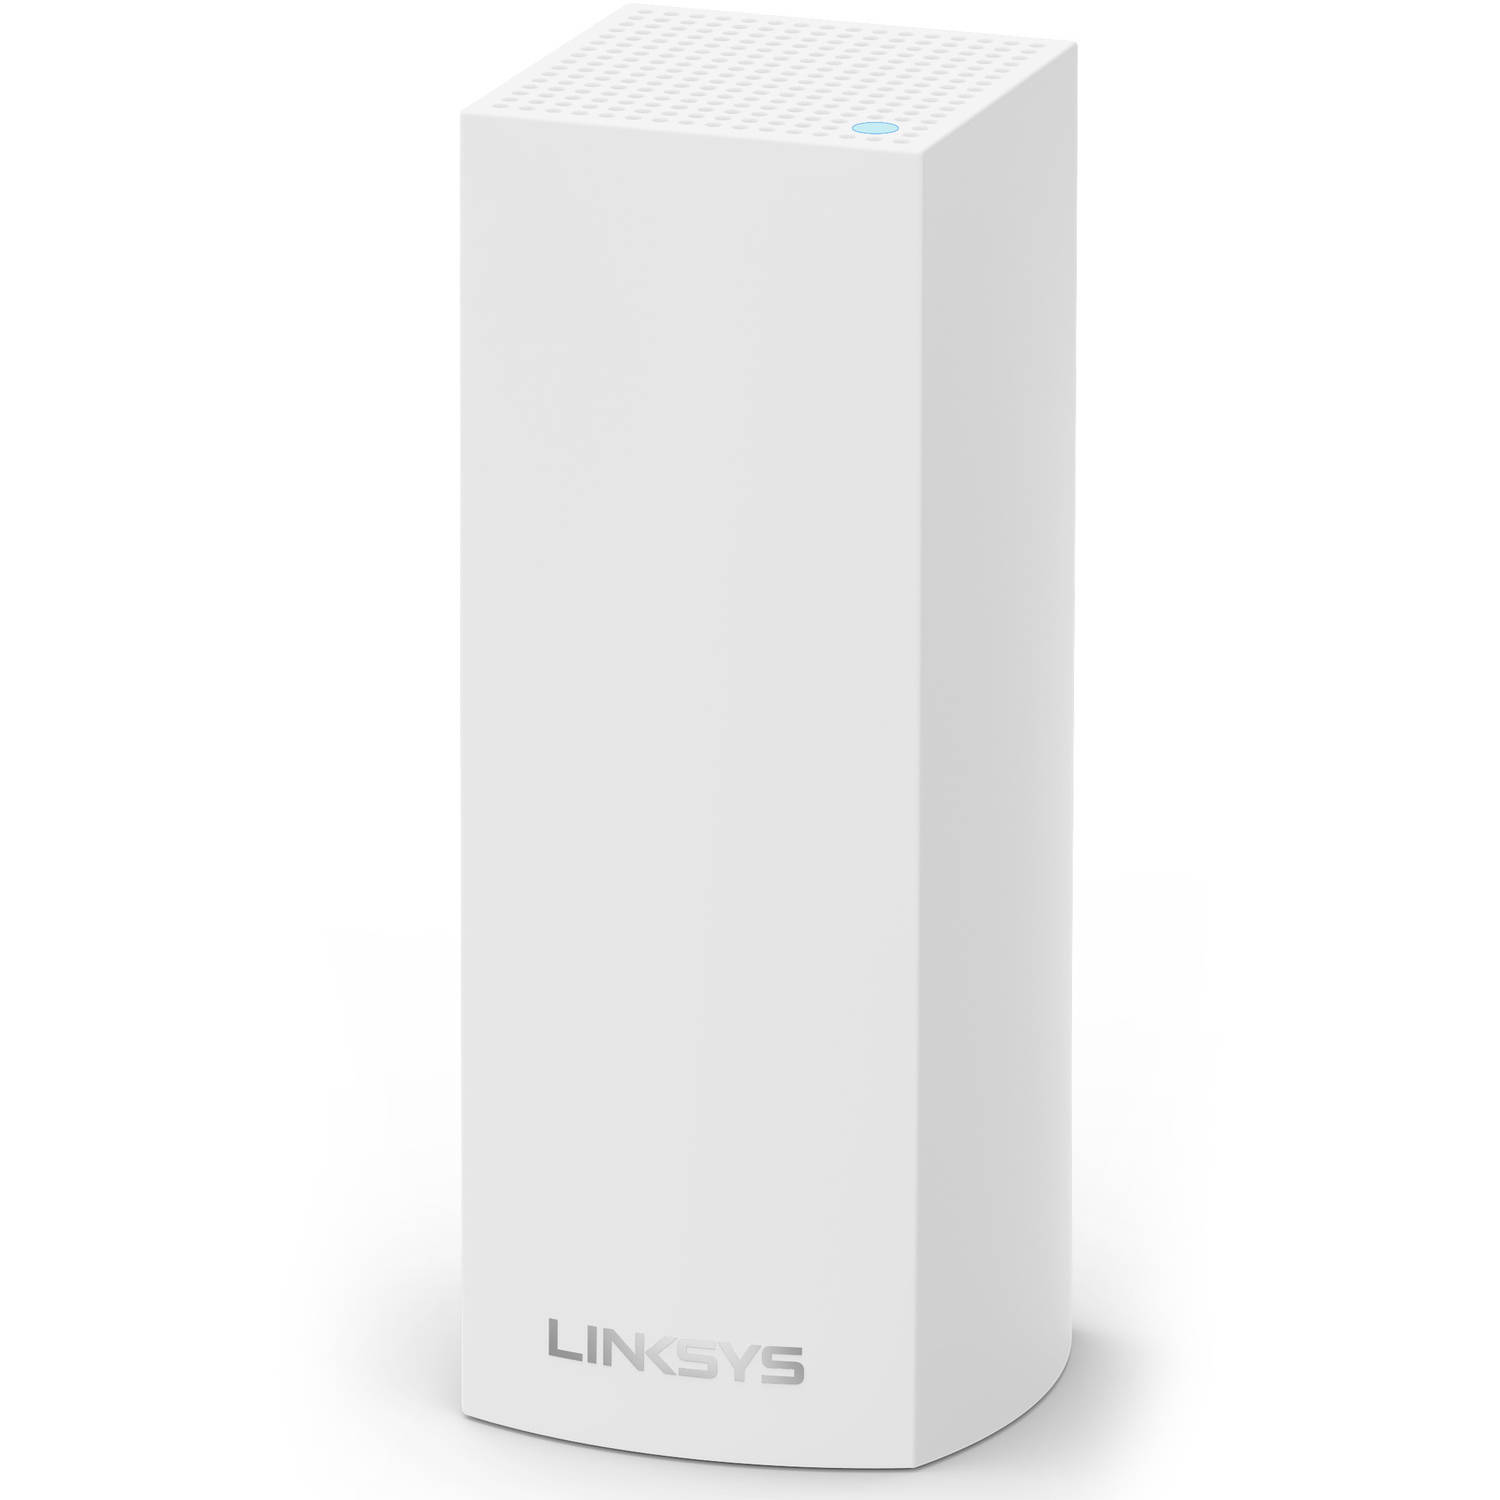 Linksys Velop AC2200 MU-MIMO Tri-Band Whole Home Wi-Fi, Bluetooth Enabled, Integrated with Amazon Alexa, 1-Pk - White (WHW0301)